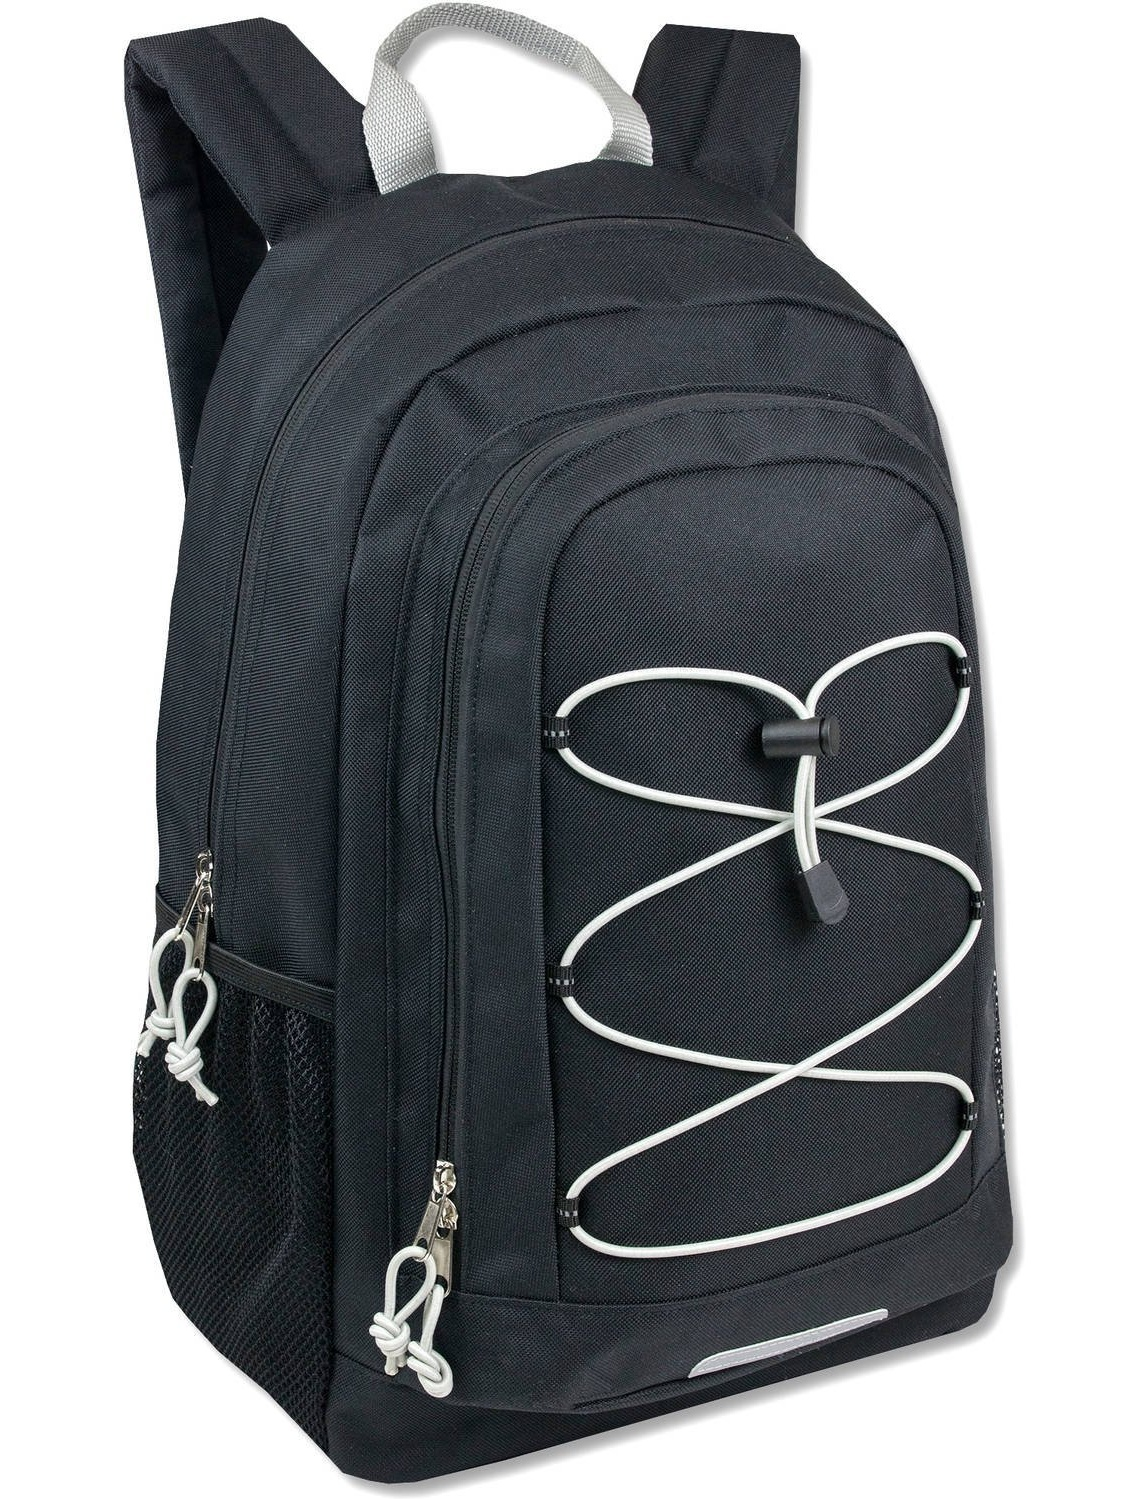 "School Backpack. This Cute Bag For Kids 19"" W  Padded Adjustable Straps (Black), Made From Durable Polyester Bungee... by"